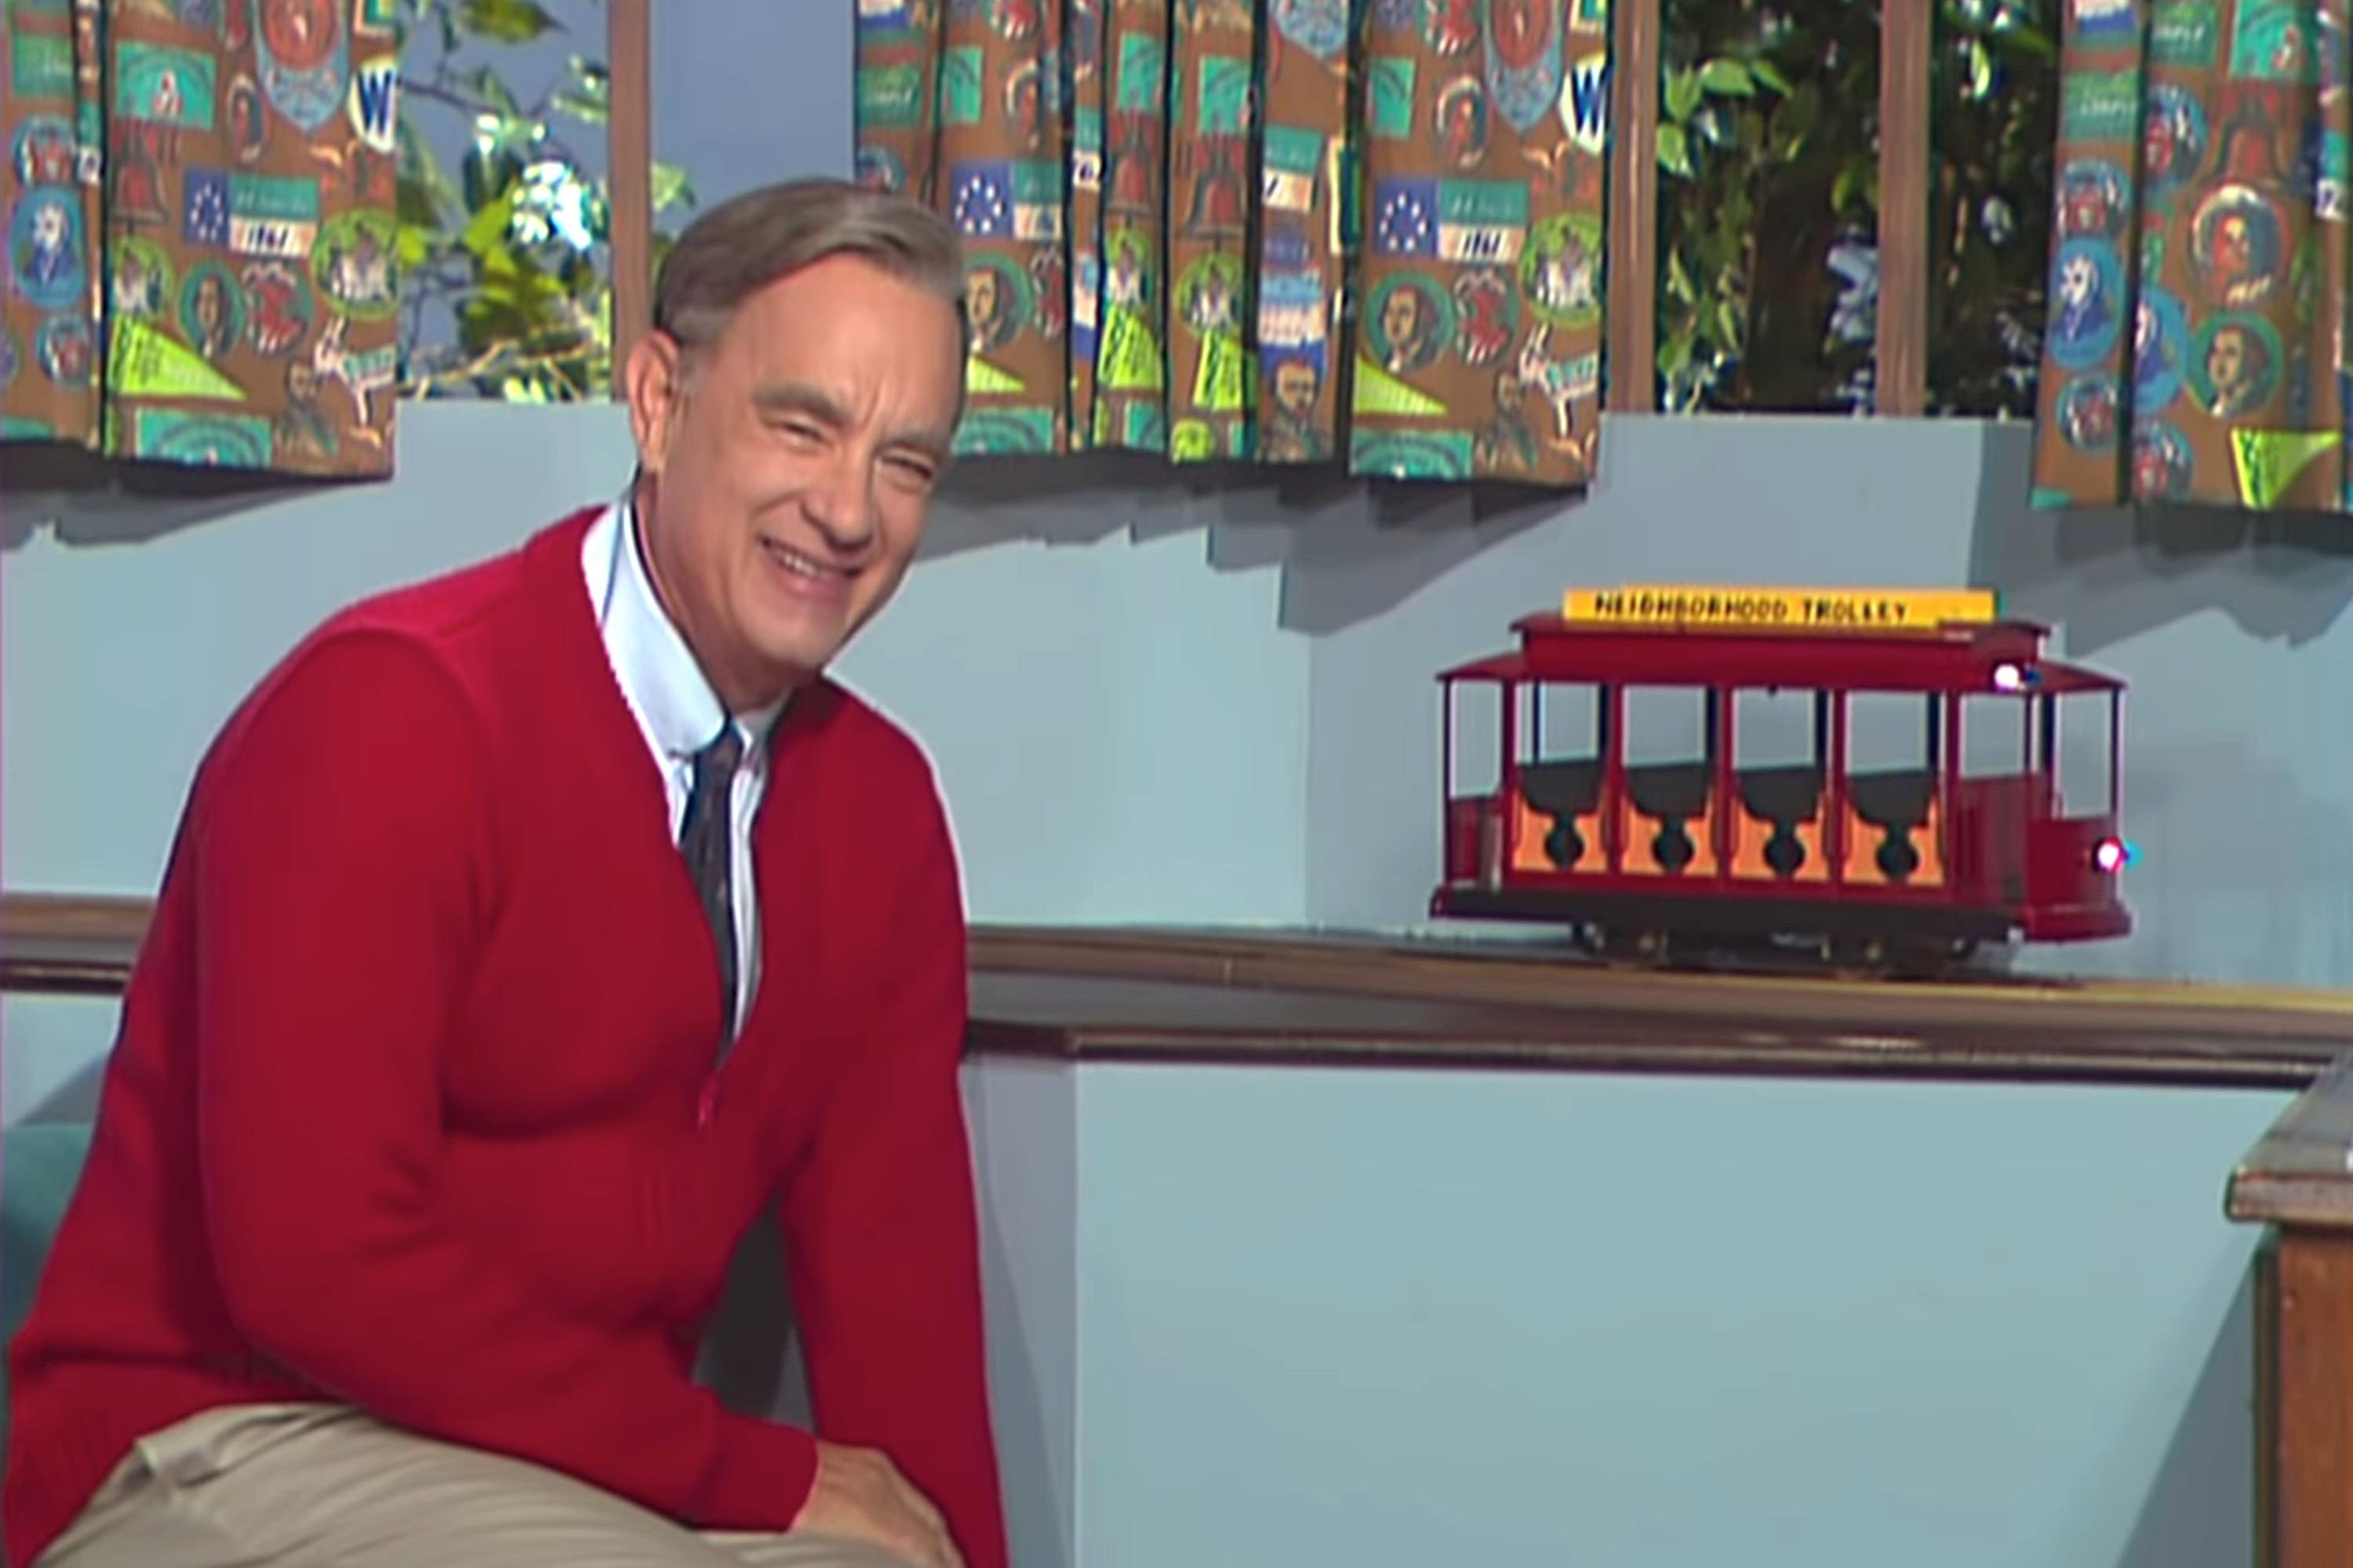 Tom Hanks Leads Mister Rogers Sing-Along at A Beautiful Day in the Neighborhood Premiere